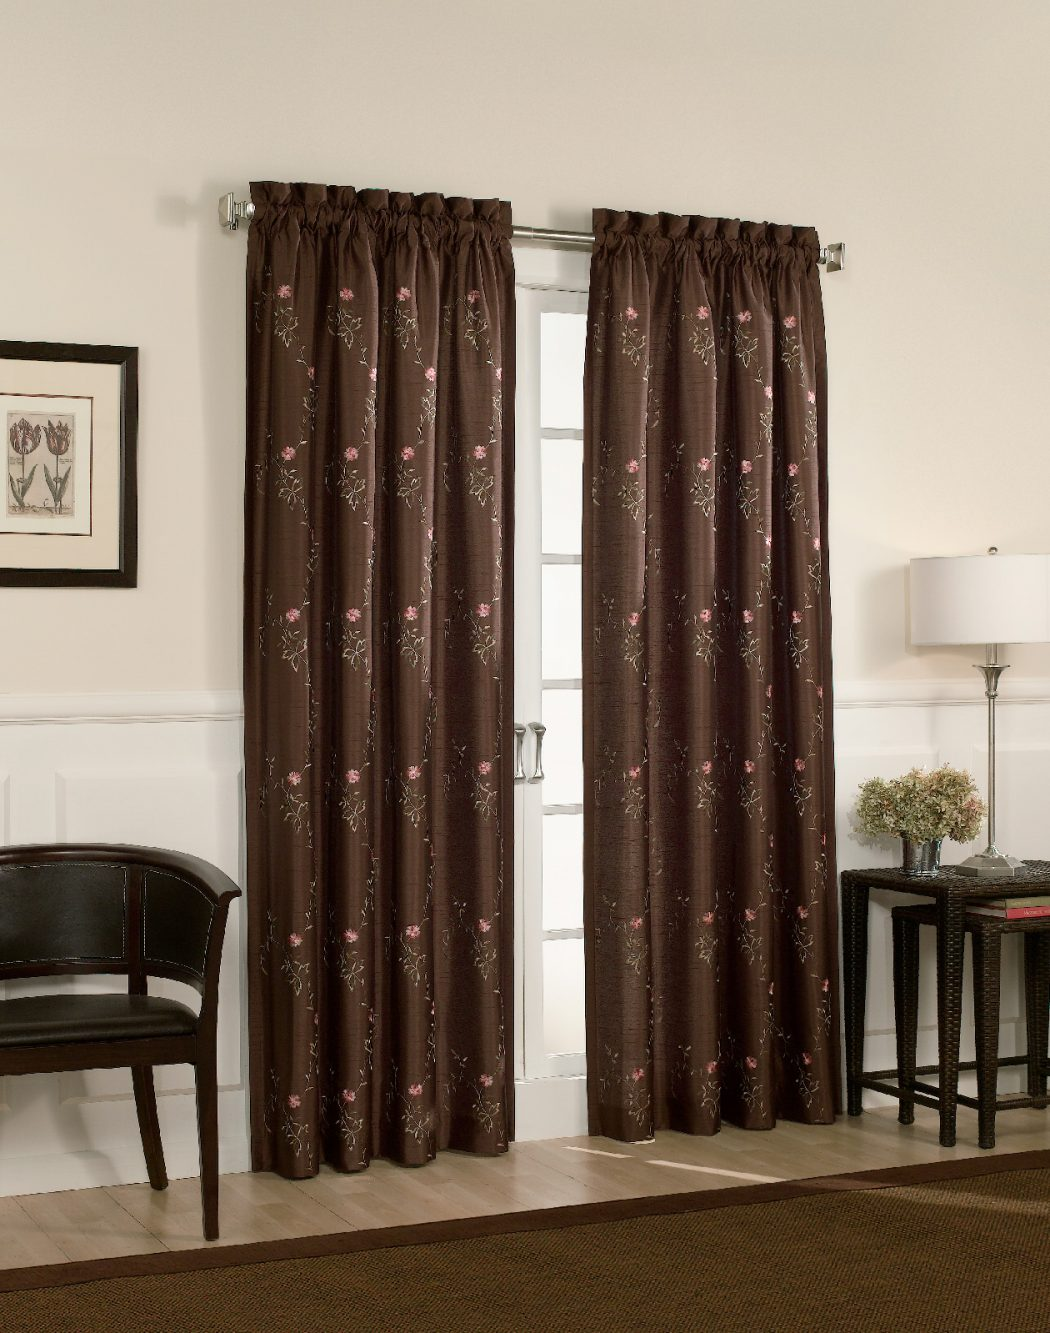 tracy-brown-back-tab-window-curtain-panel-larg 20+ Hottest Curtain Design Ideas for 2021